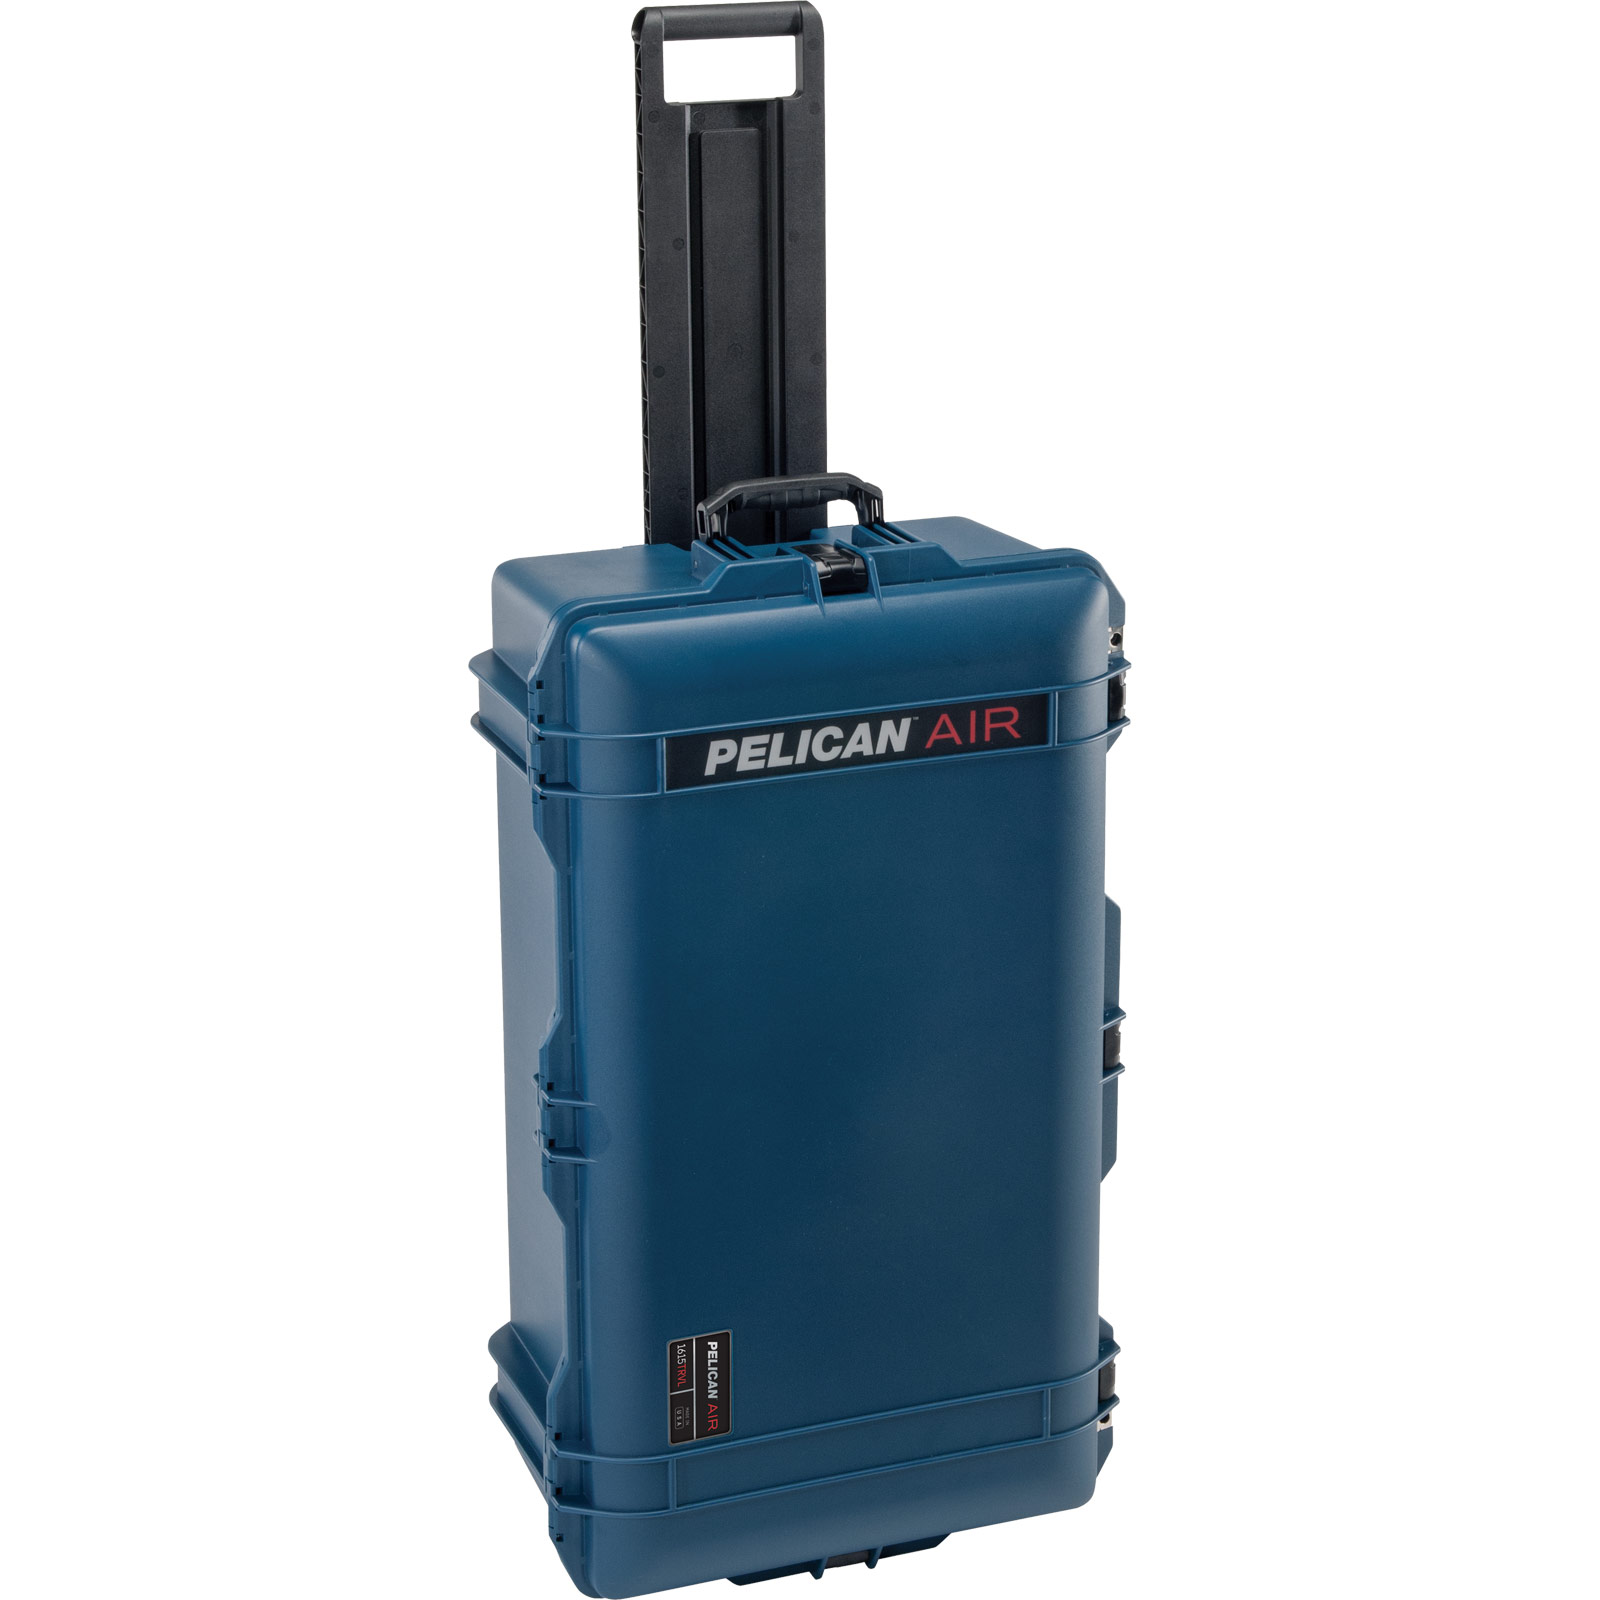 pelican air travel luggage tsa case